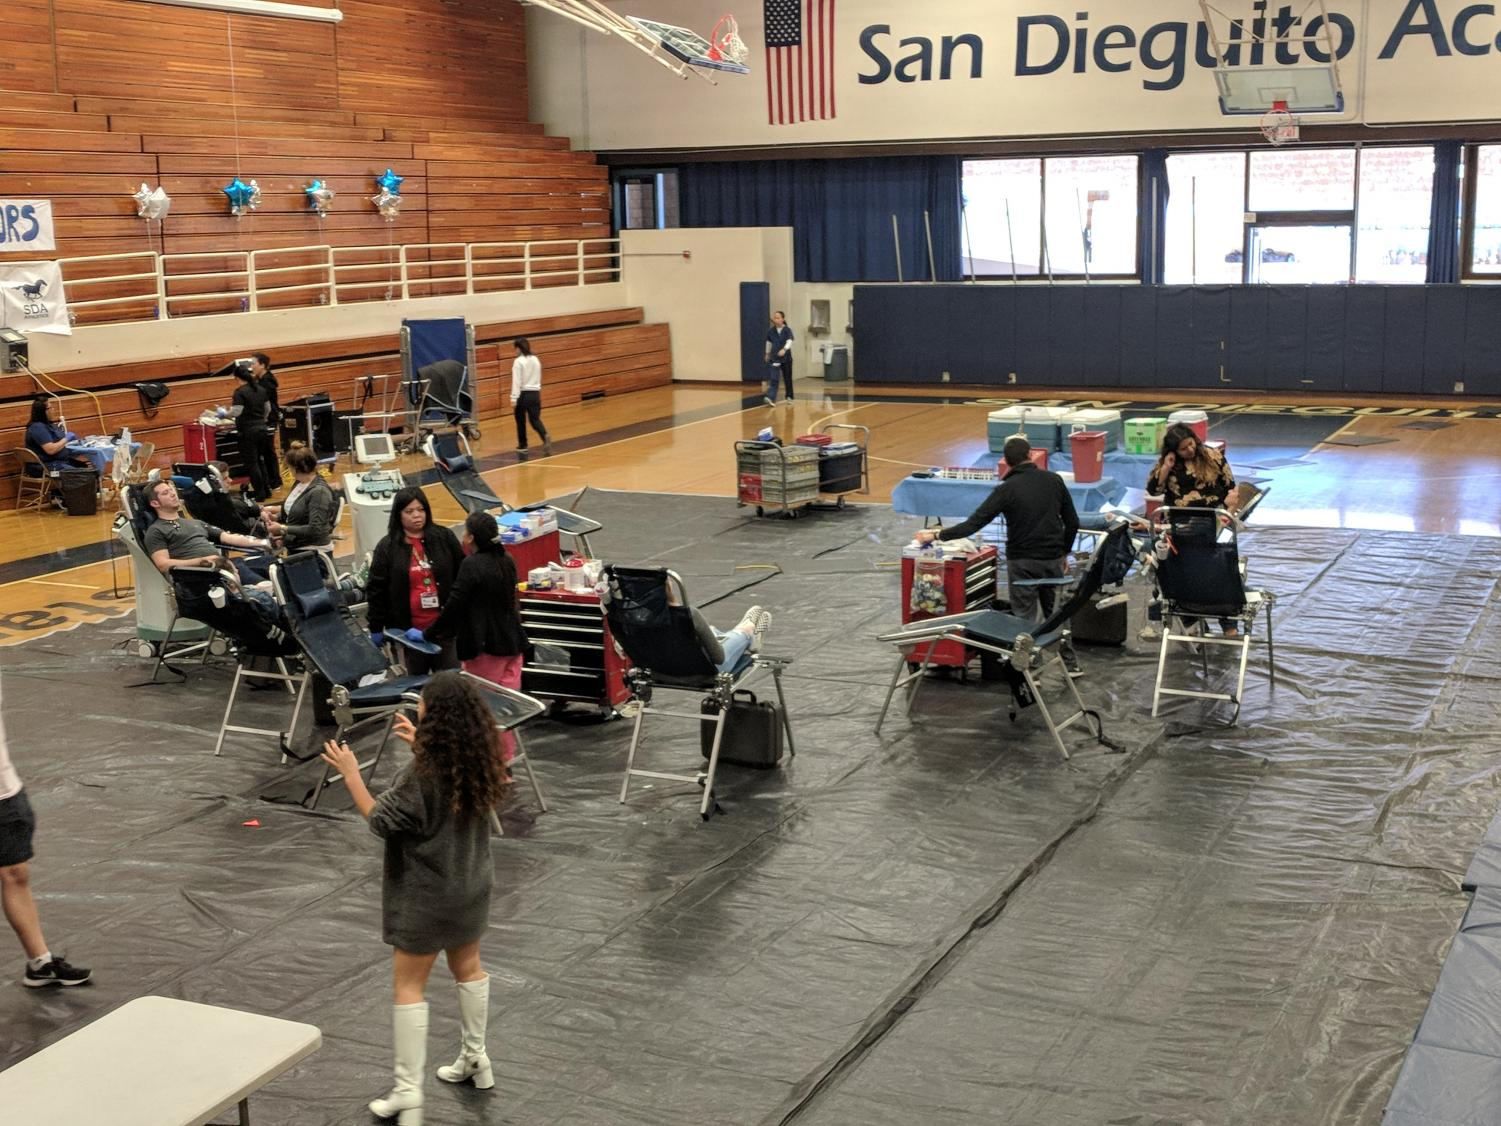 The Blood Drive set up in the gym